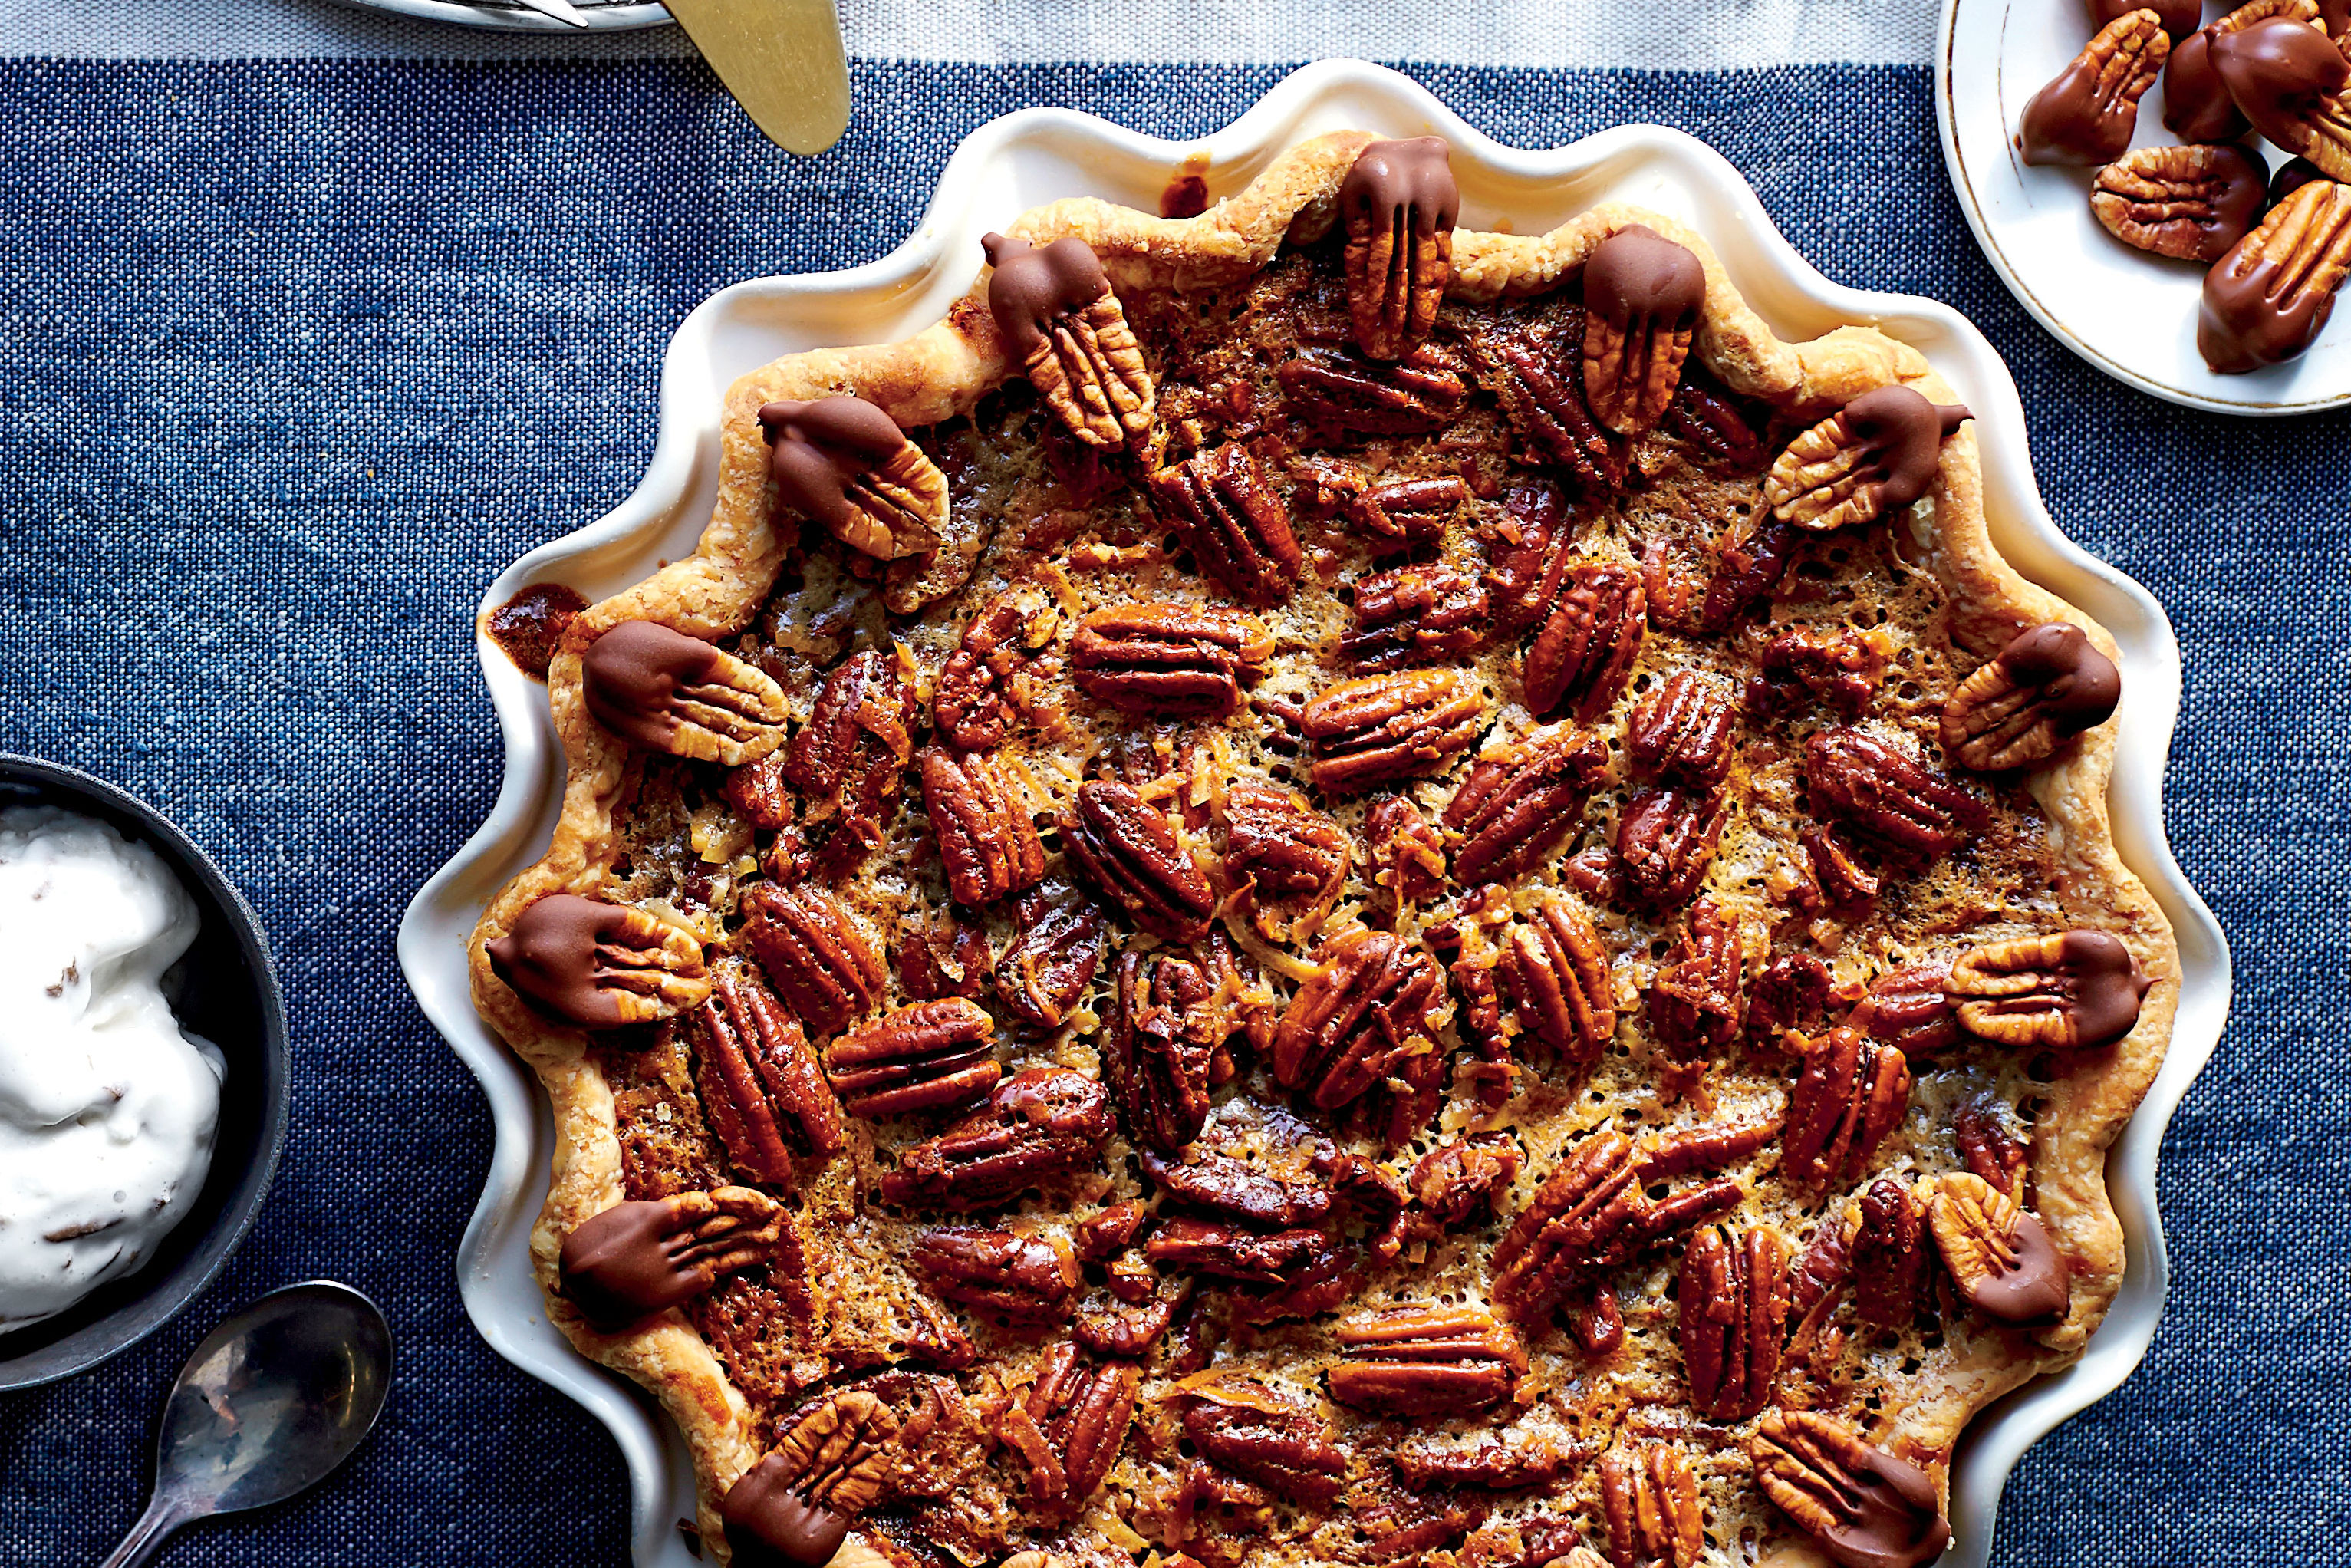 How the Pecan Pie Became the South's Signature Dessert